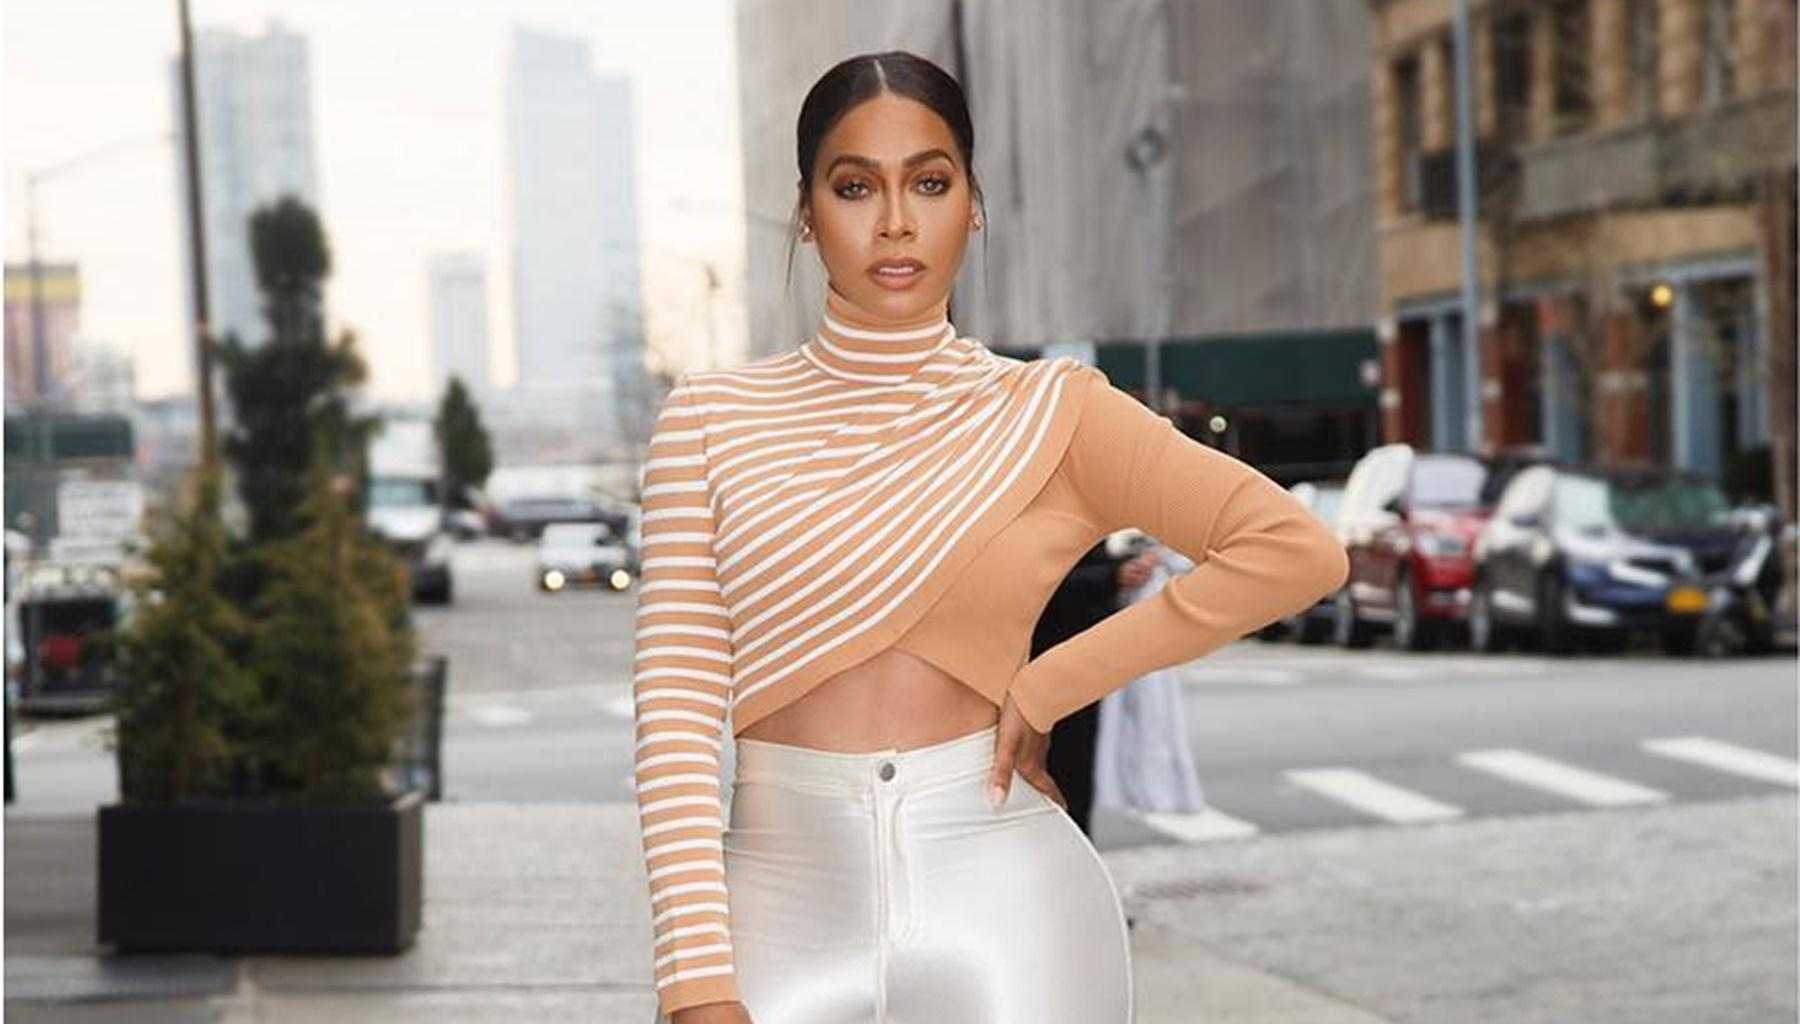 La La Anthony Shares Video Of Her Huge Baby Bump After Reconciling With Husband Carmelo -- 'Power' Actress Sends Fans Into A Frenzy